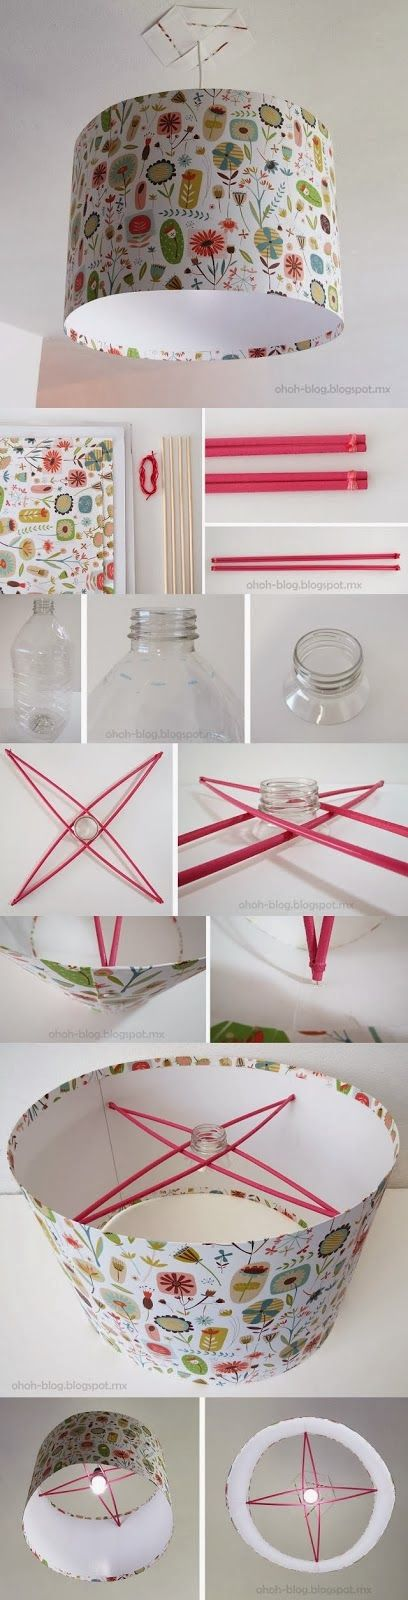 Small things simple pleasures: how to recover a lampshade.